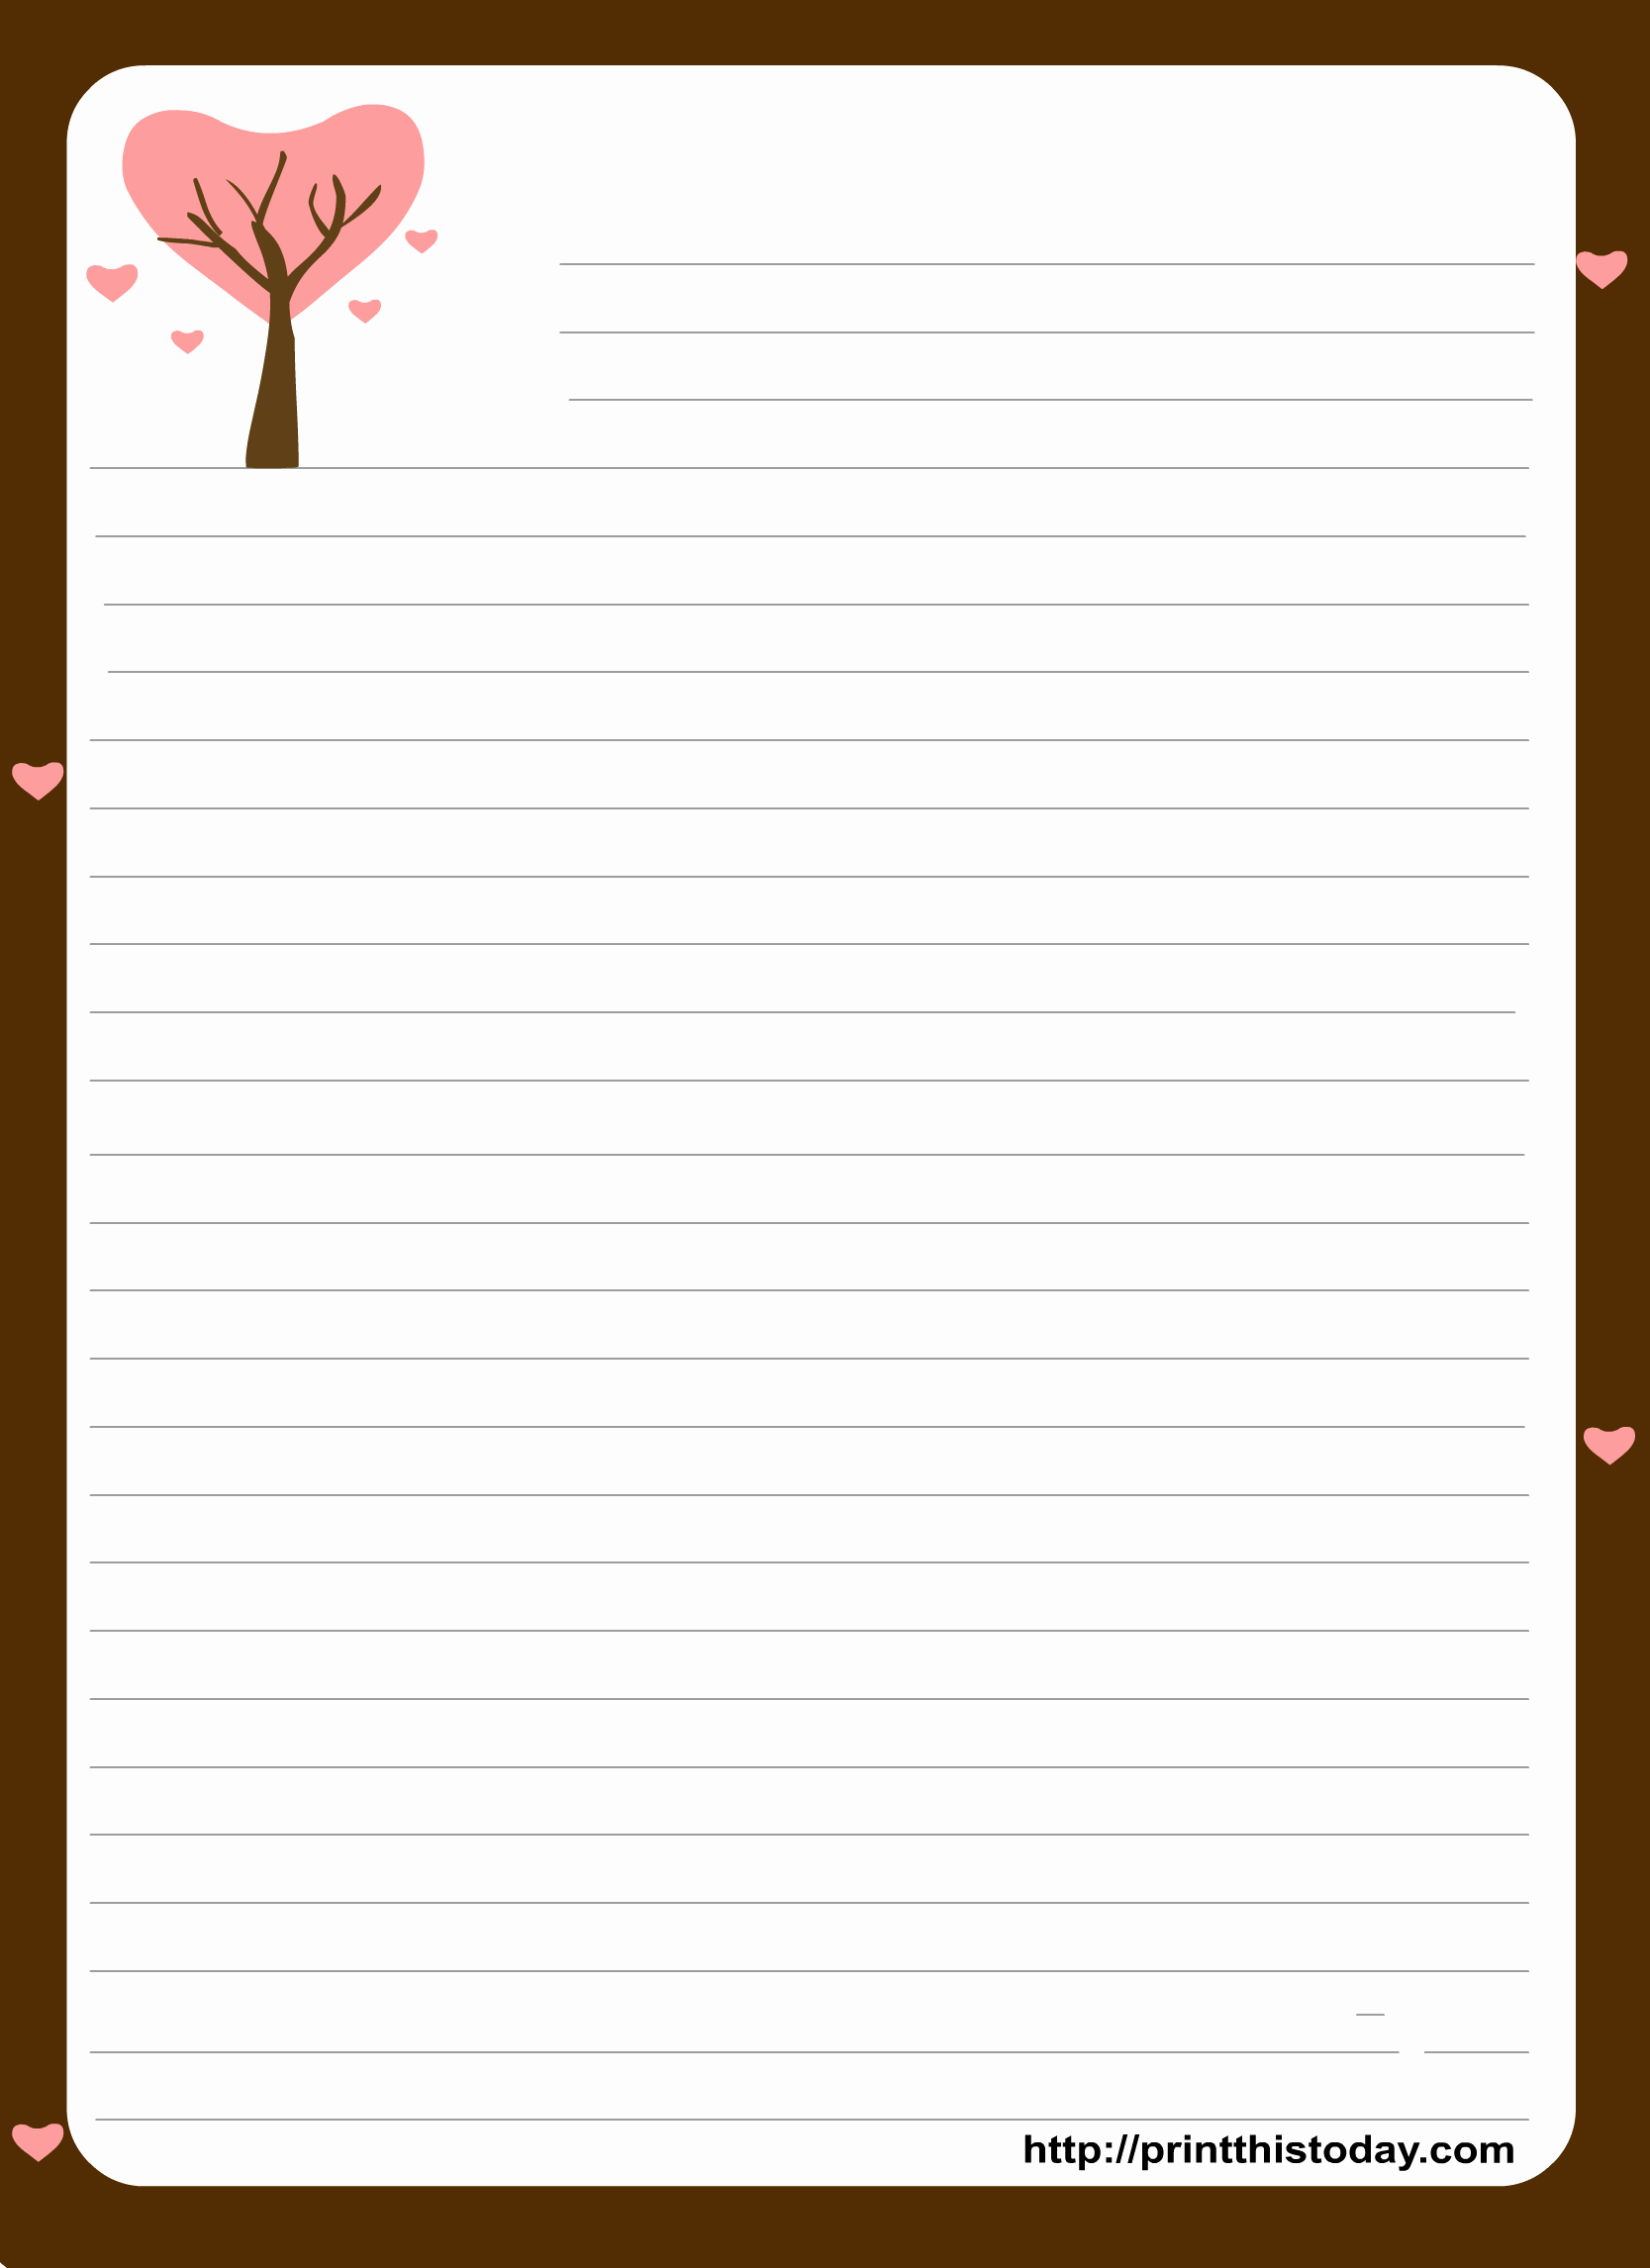 Free Printable Lined Stationery Best Of Free Printable Stationery Paper